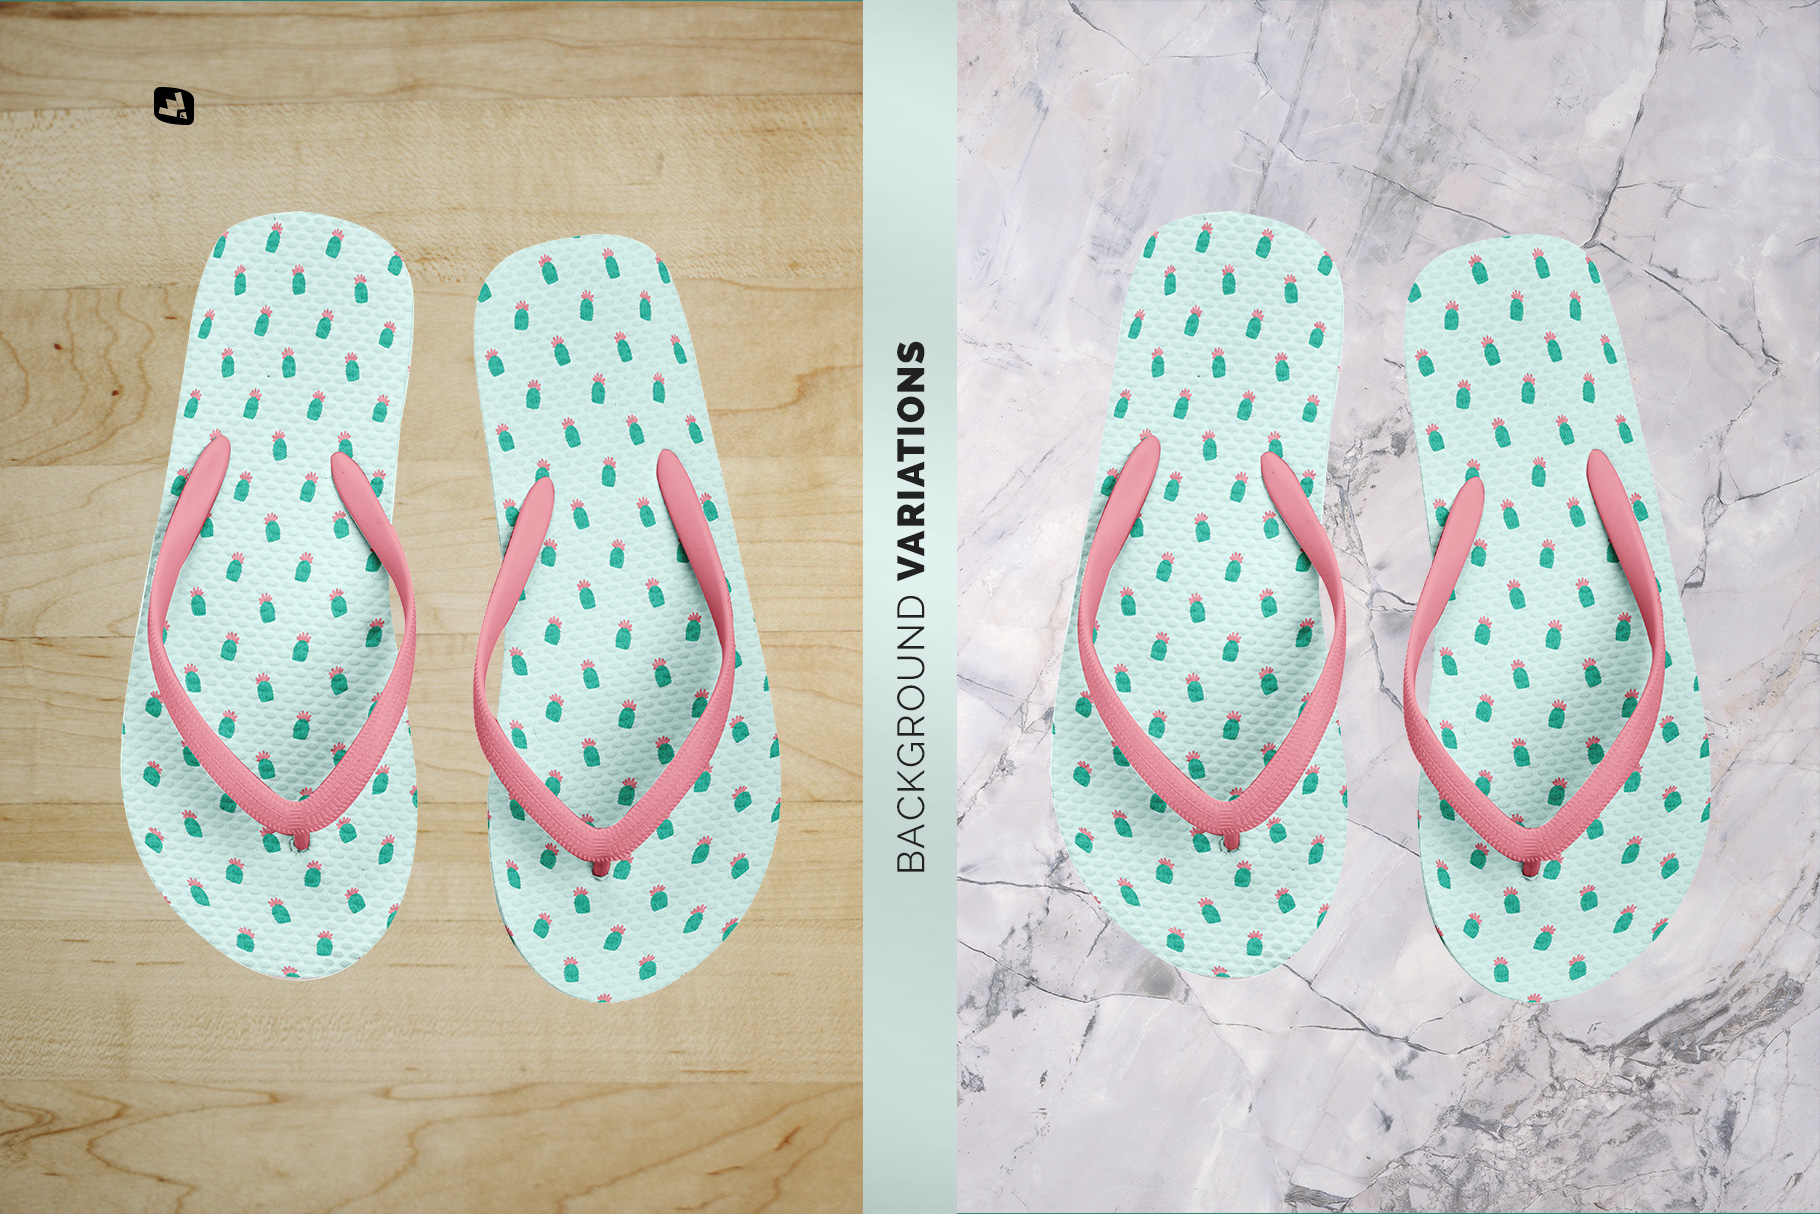 background options of the unisex rubber flip flop pair mockup